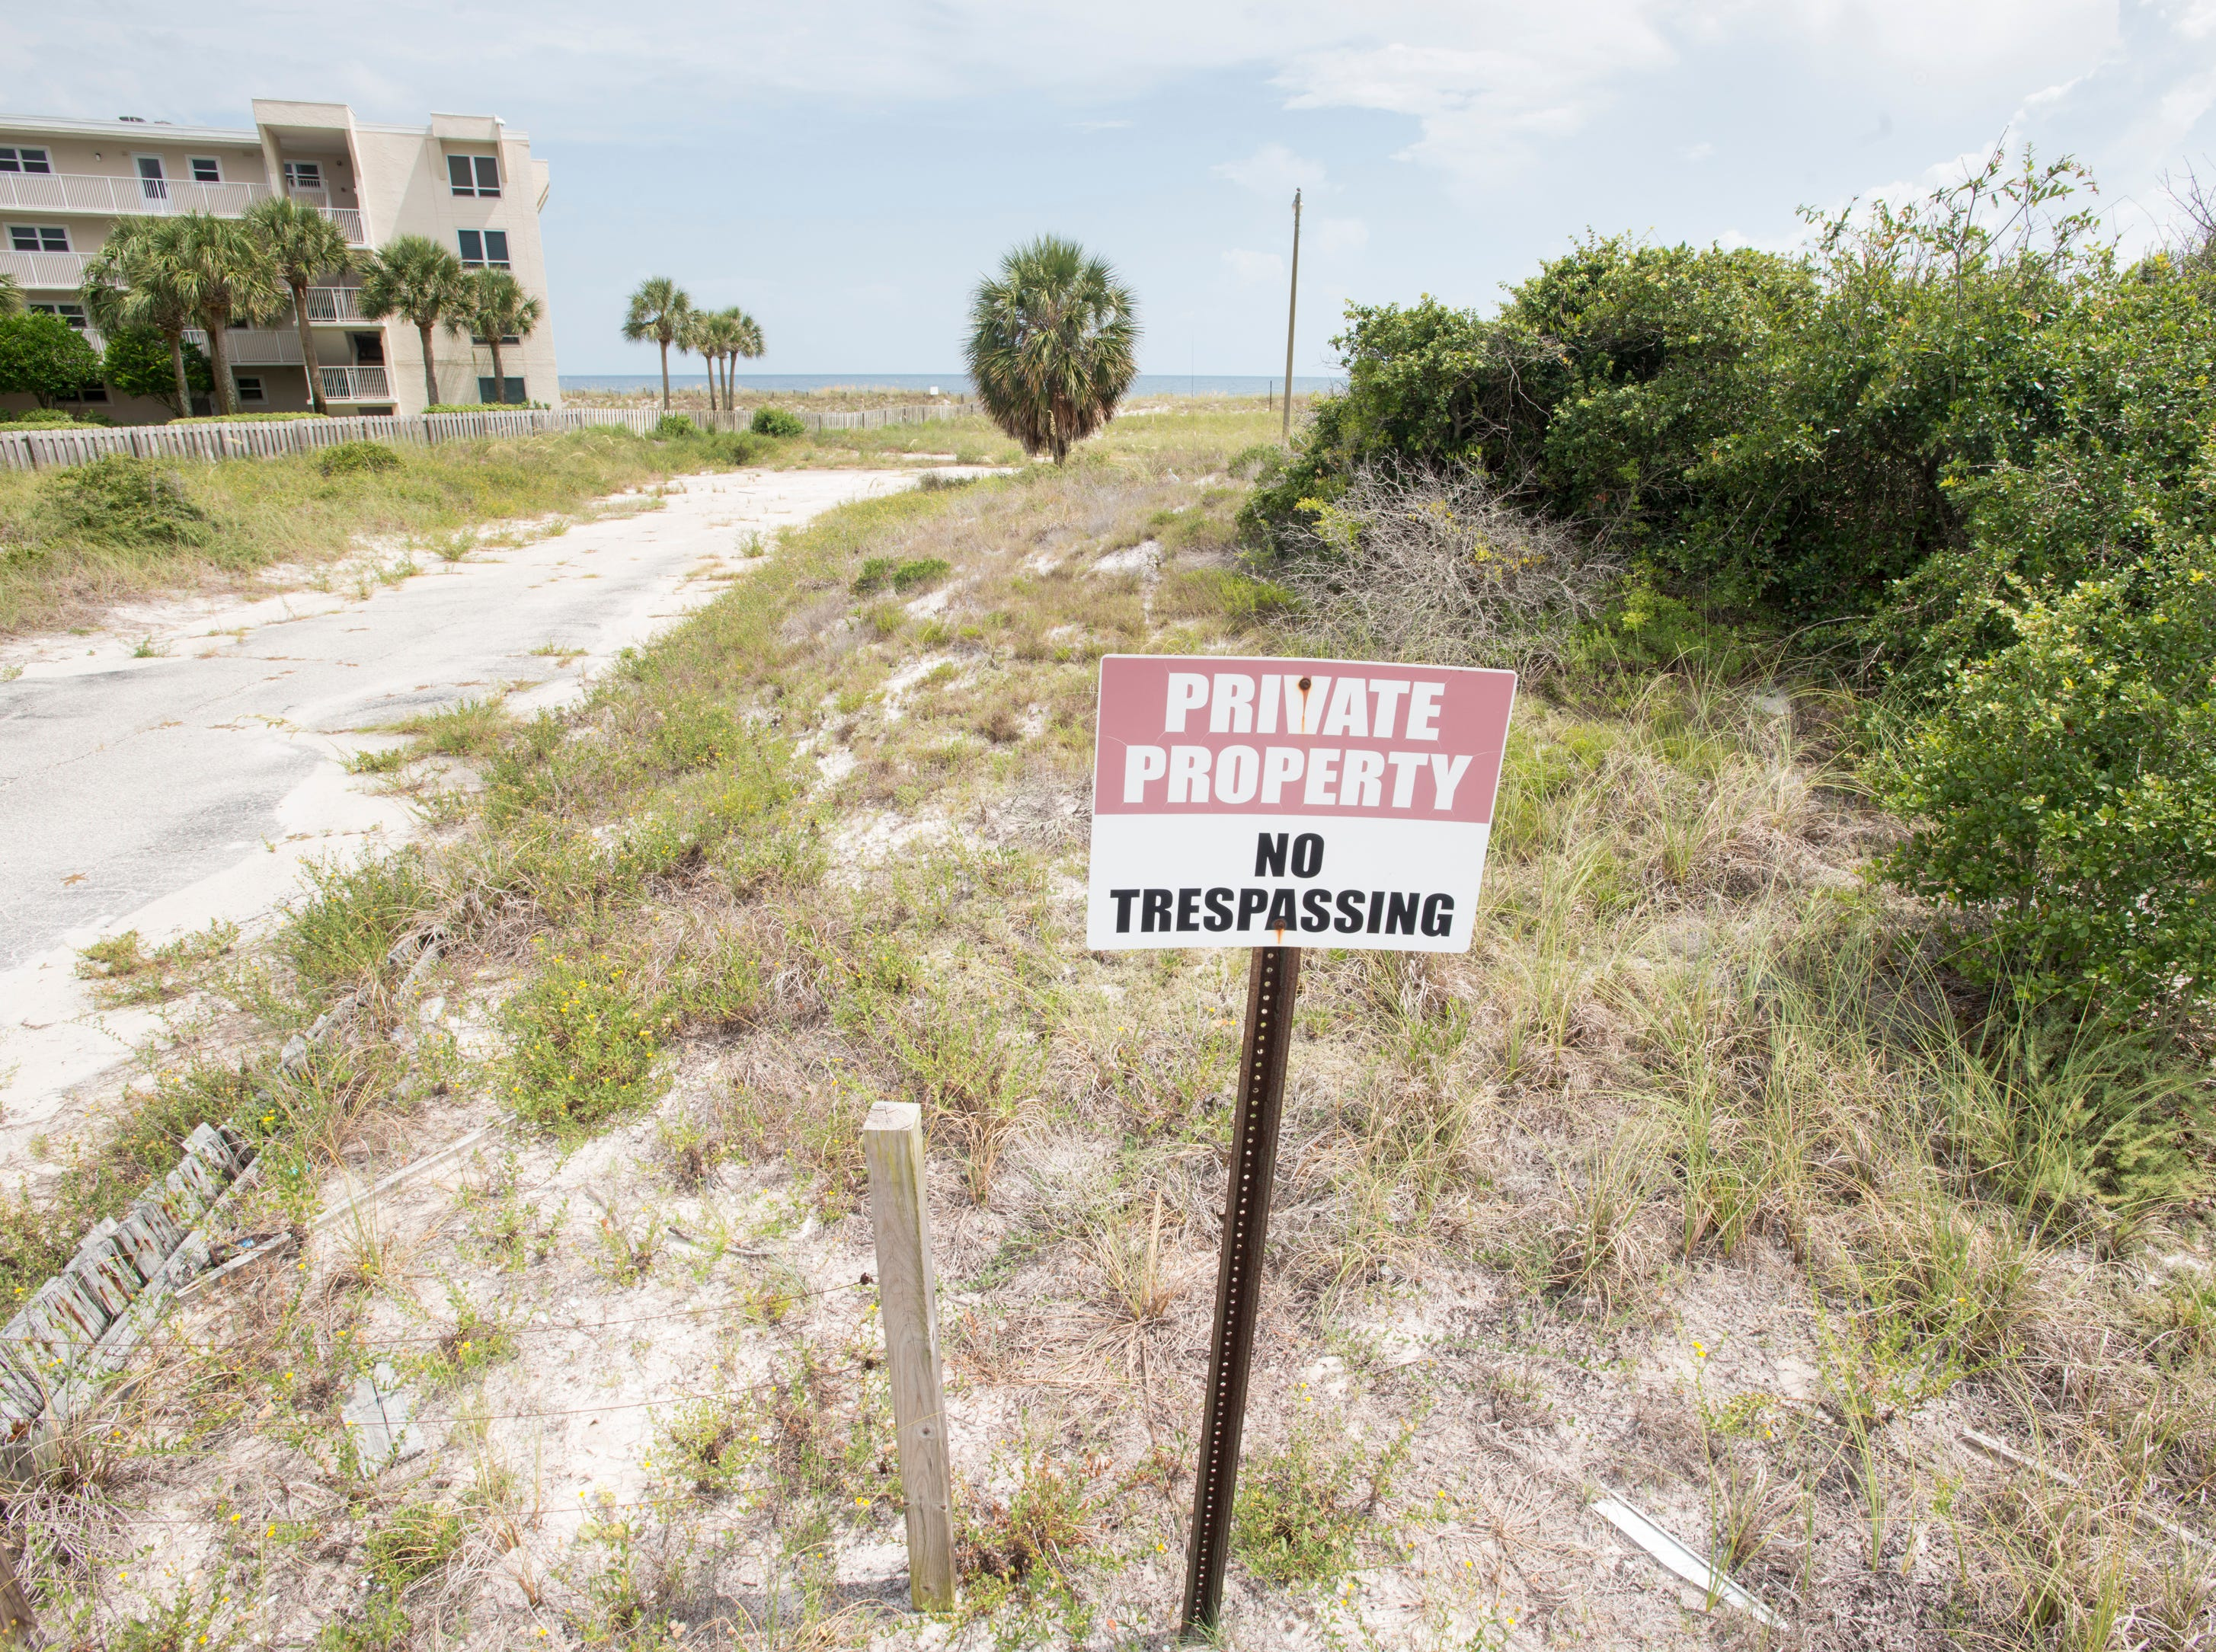 Perdido Key beach mouse or parking lot? County commissioner candidates divided